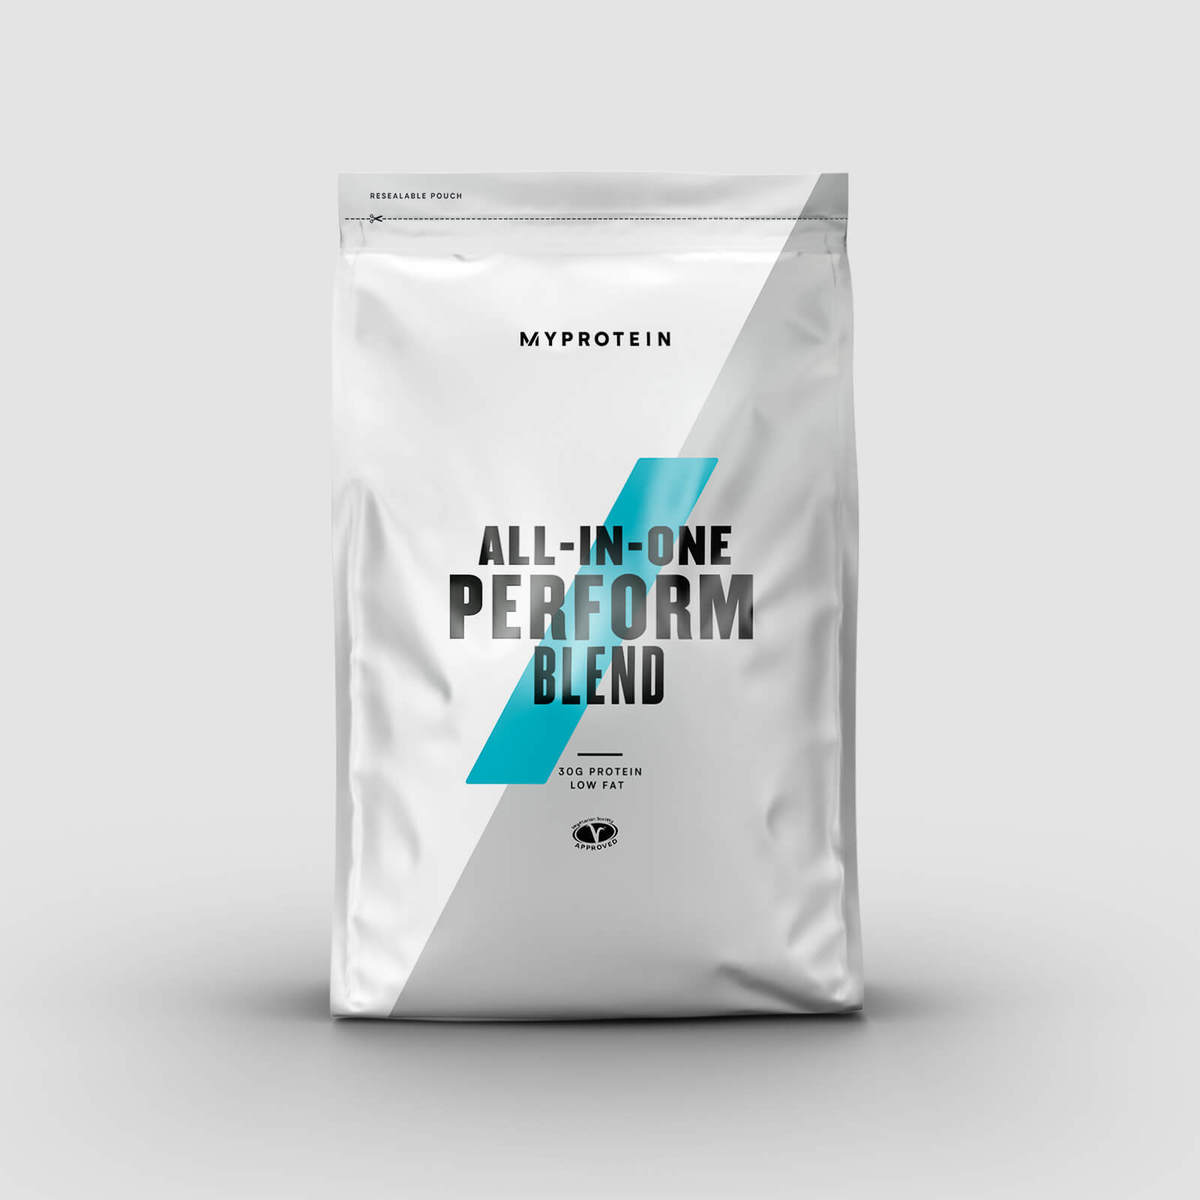 MyProtein All in one perform blend